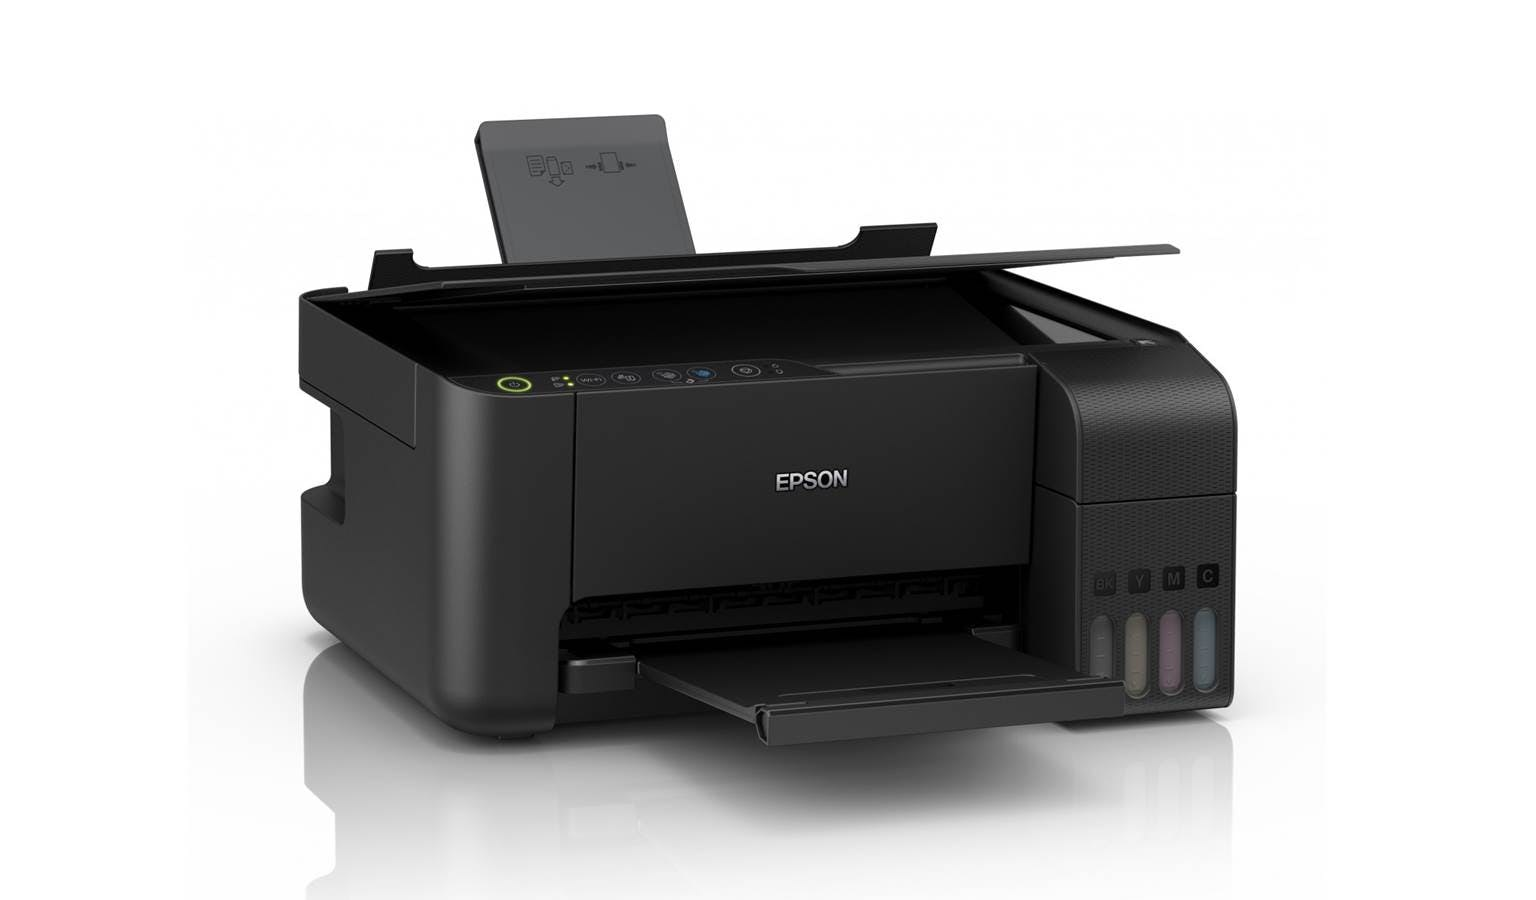 All-In-One (МФУ) EPSON L3100 4x-color купить Бишкек, Кыргызстан